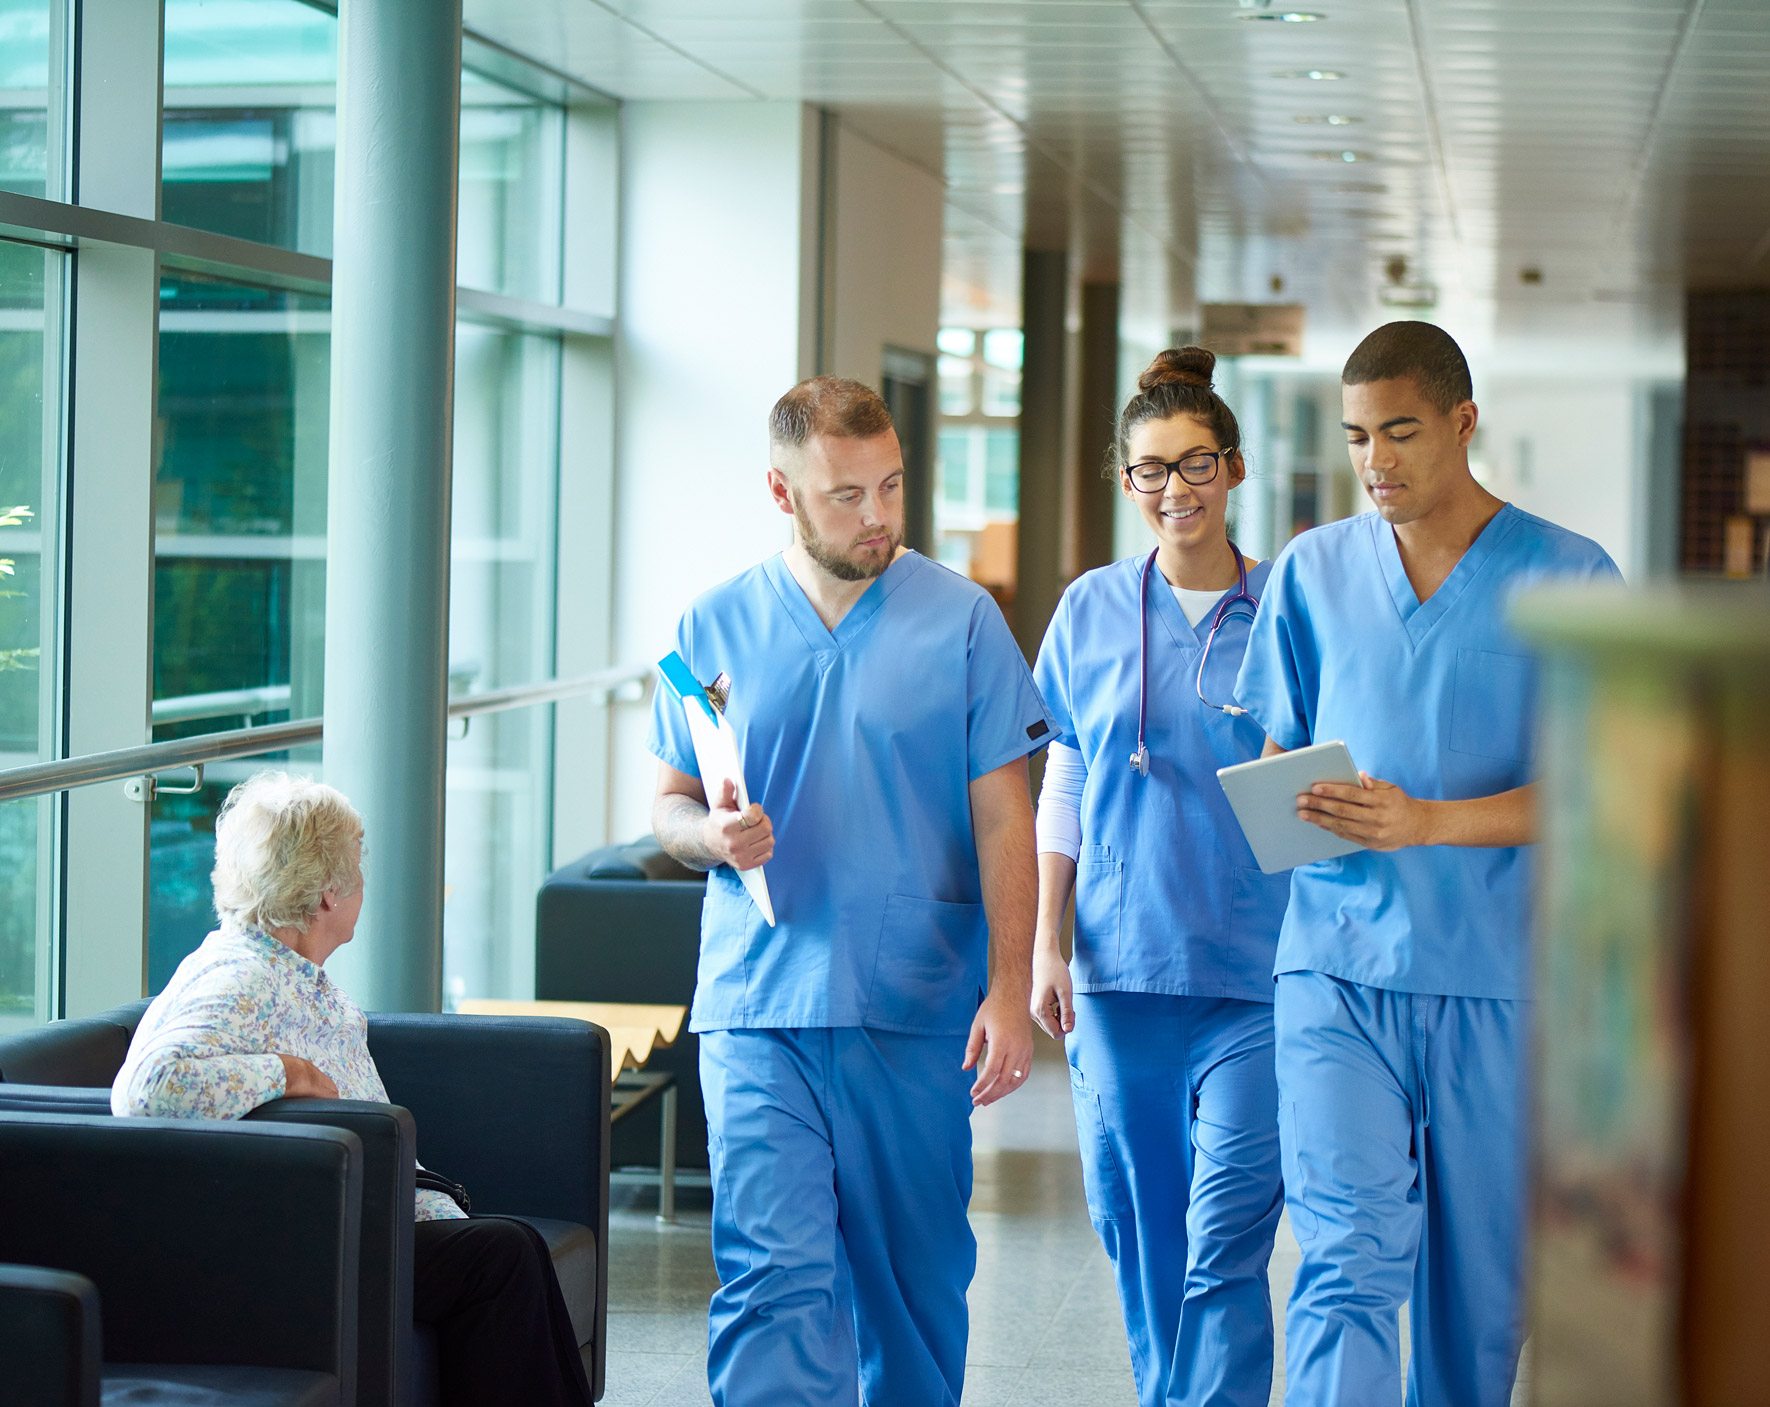 Three nurses walking and talking in a hallway